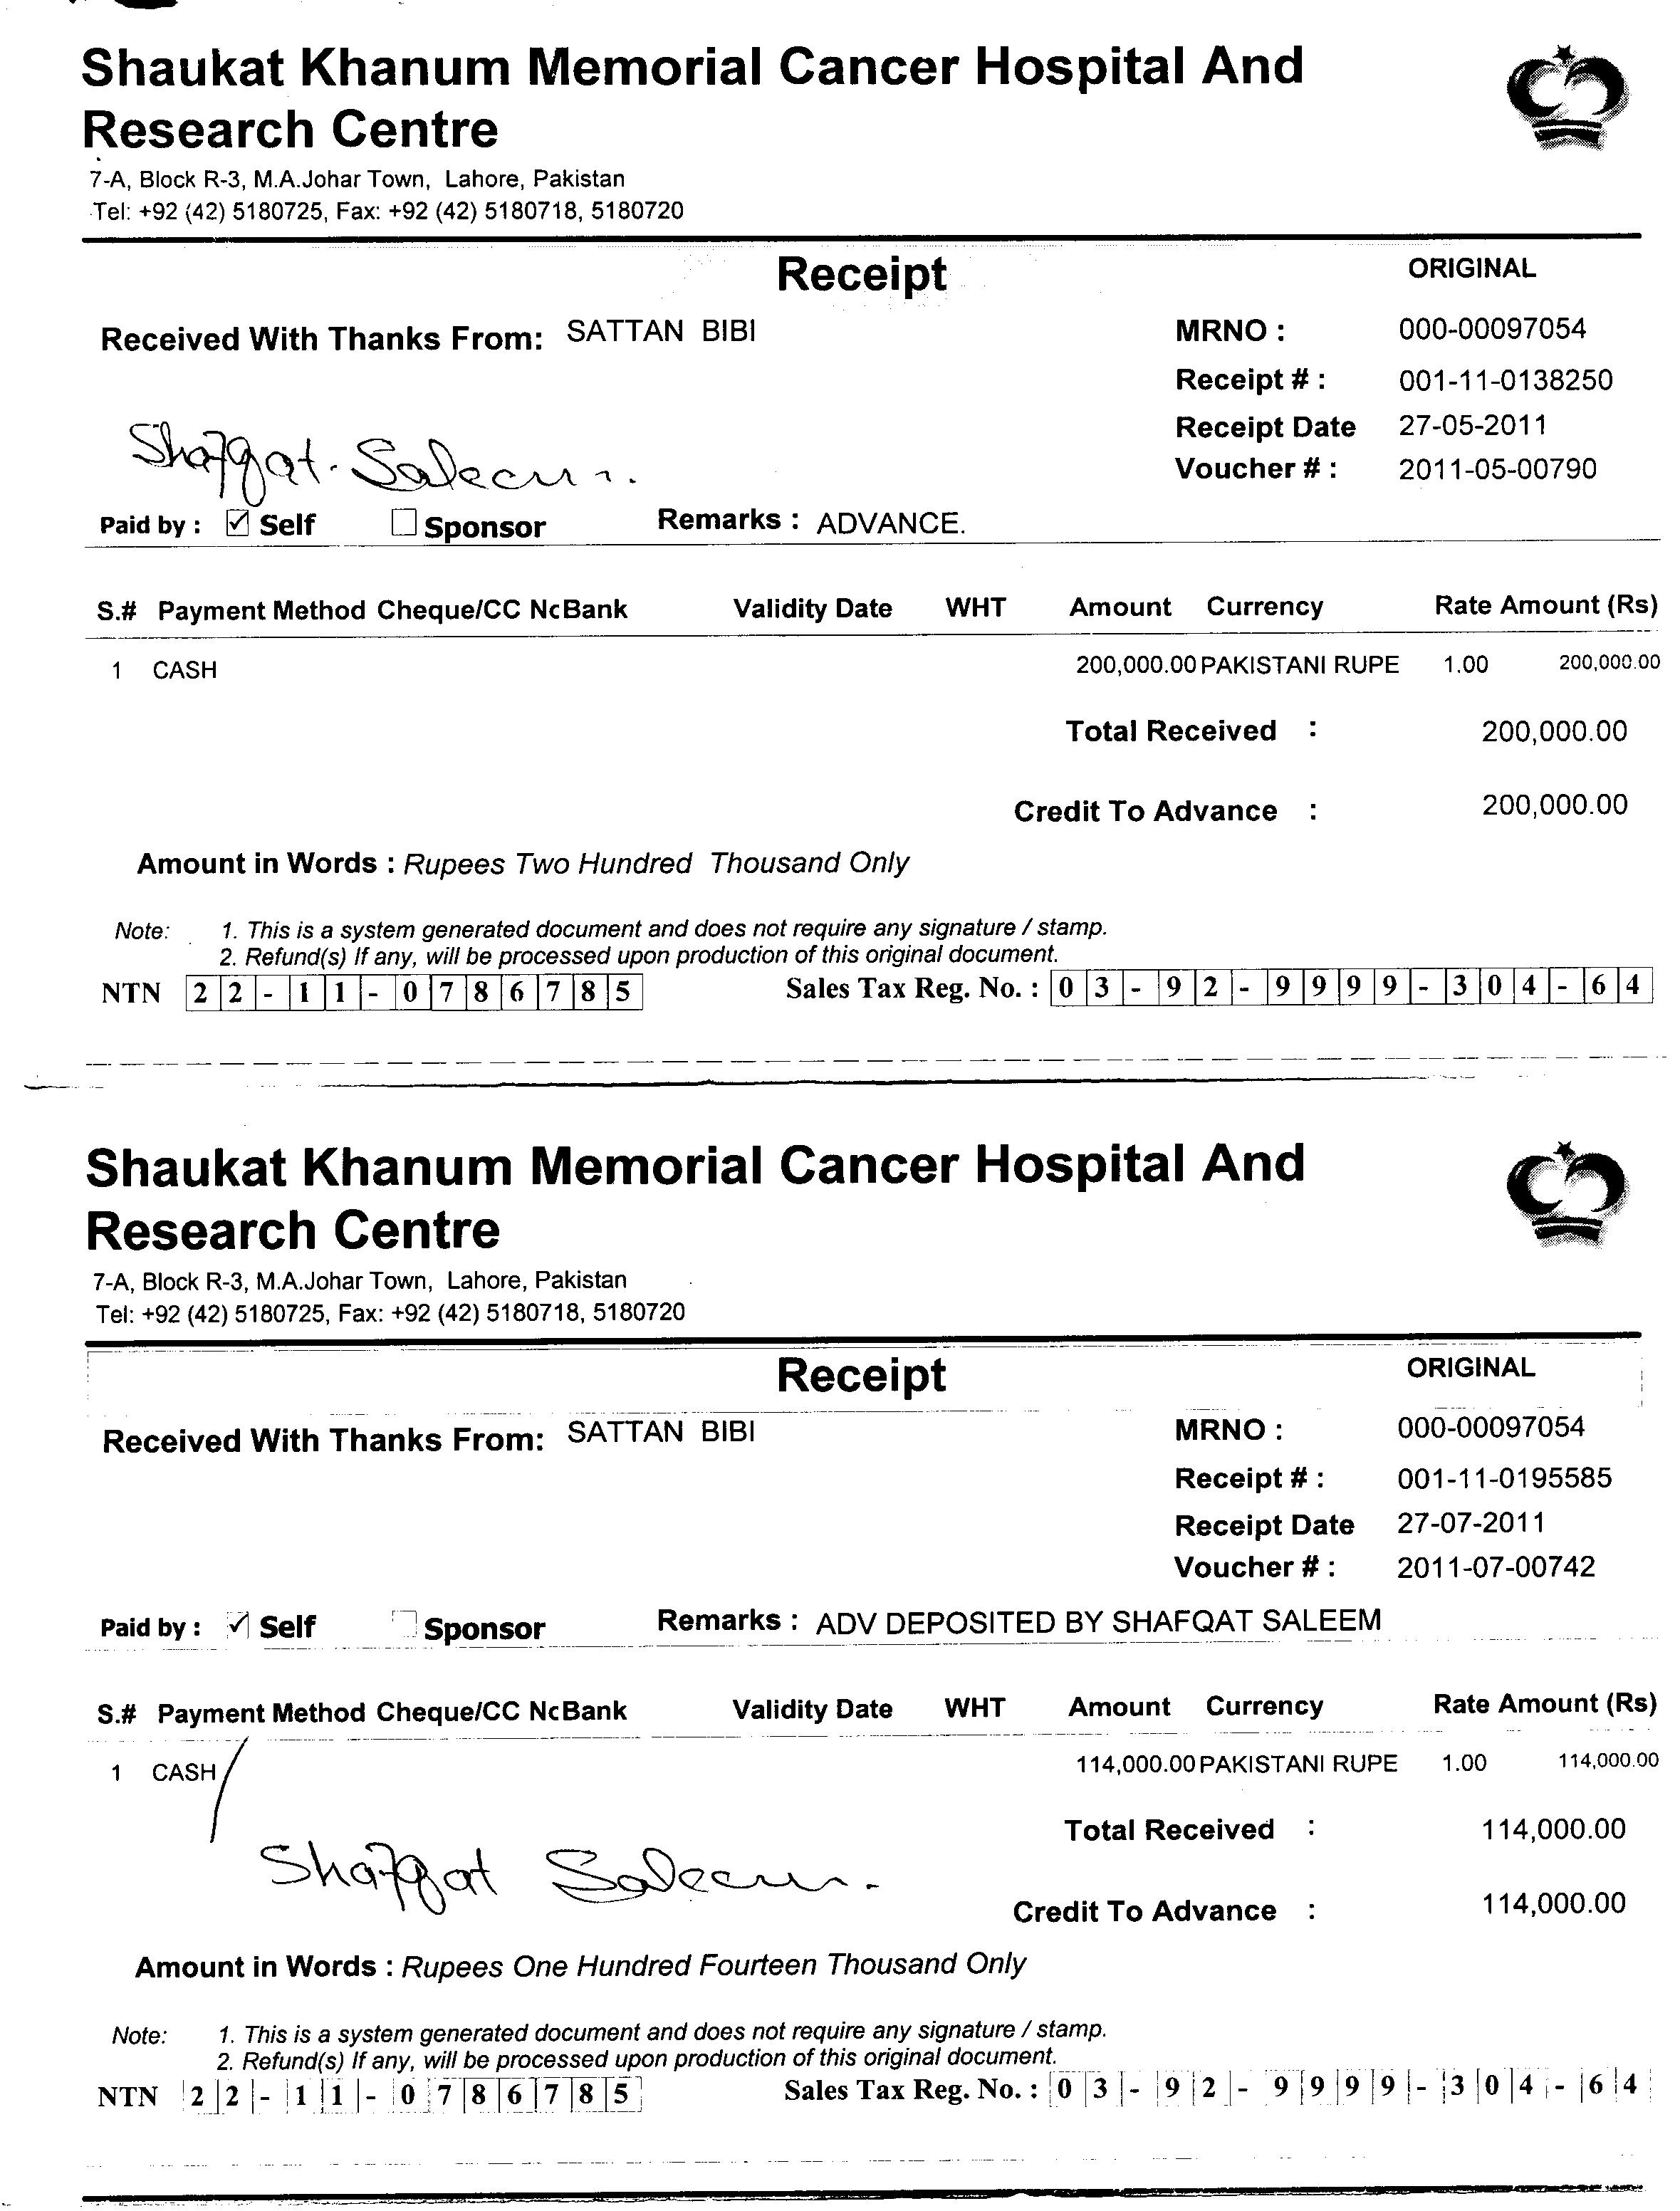 Shaukat khanum lab test reports online